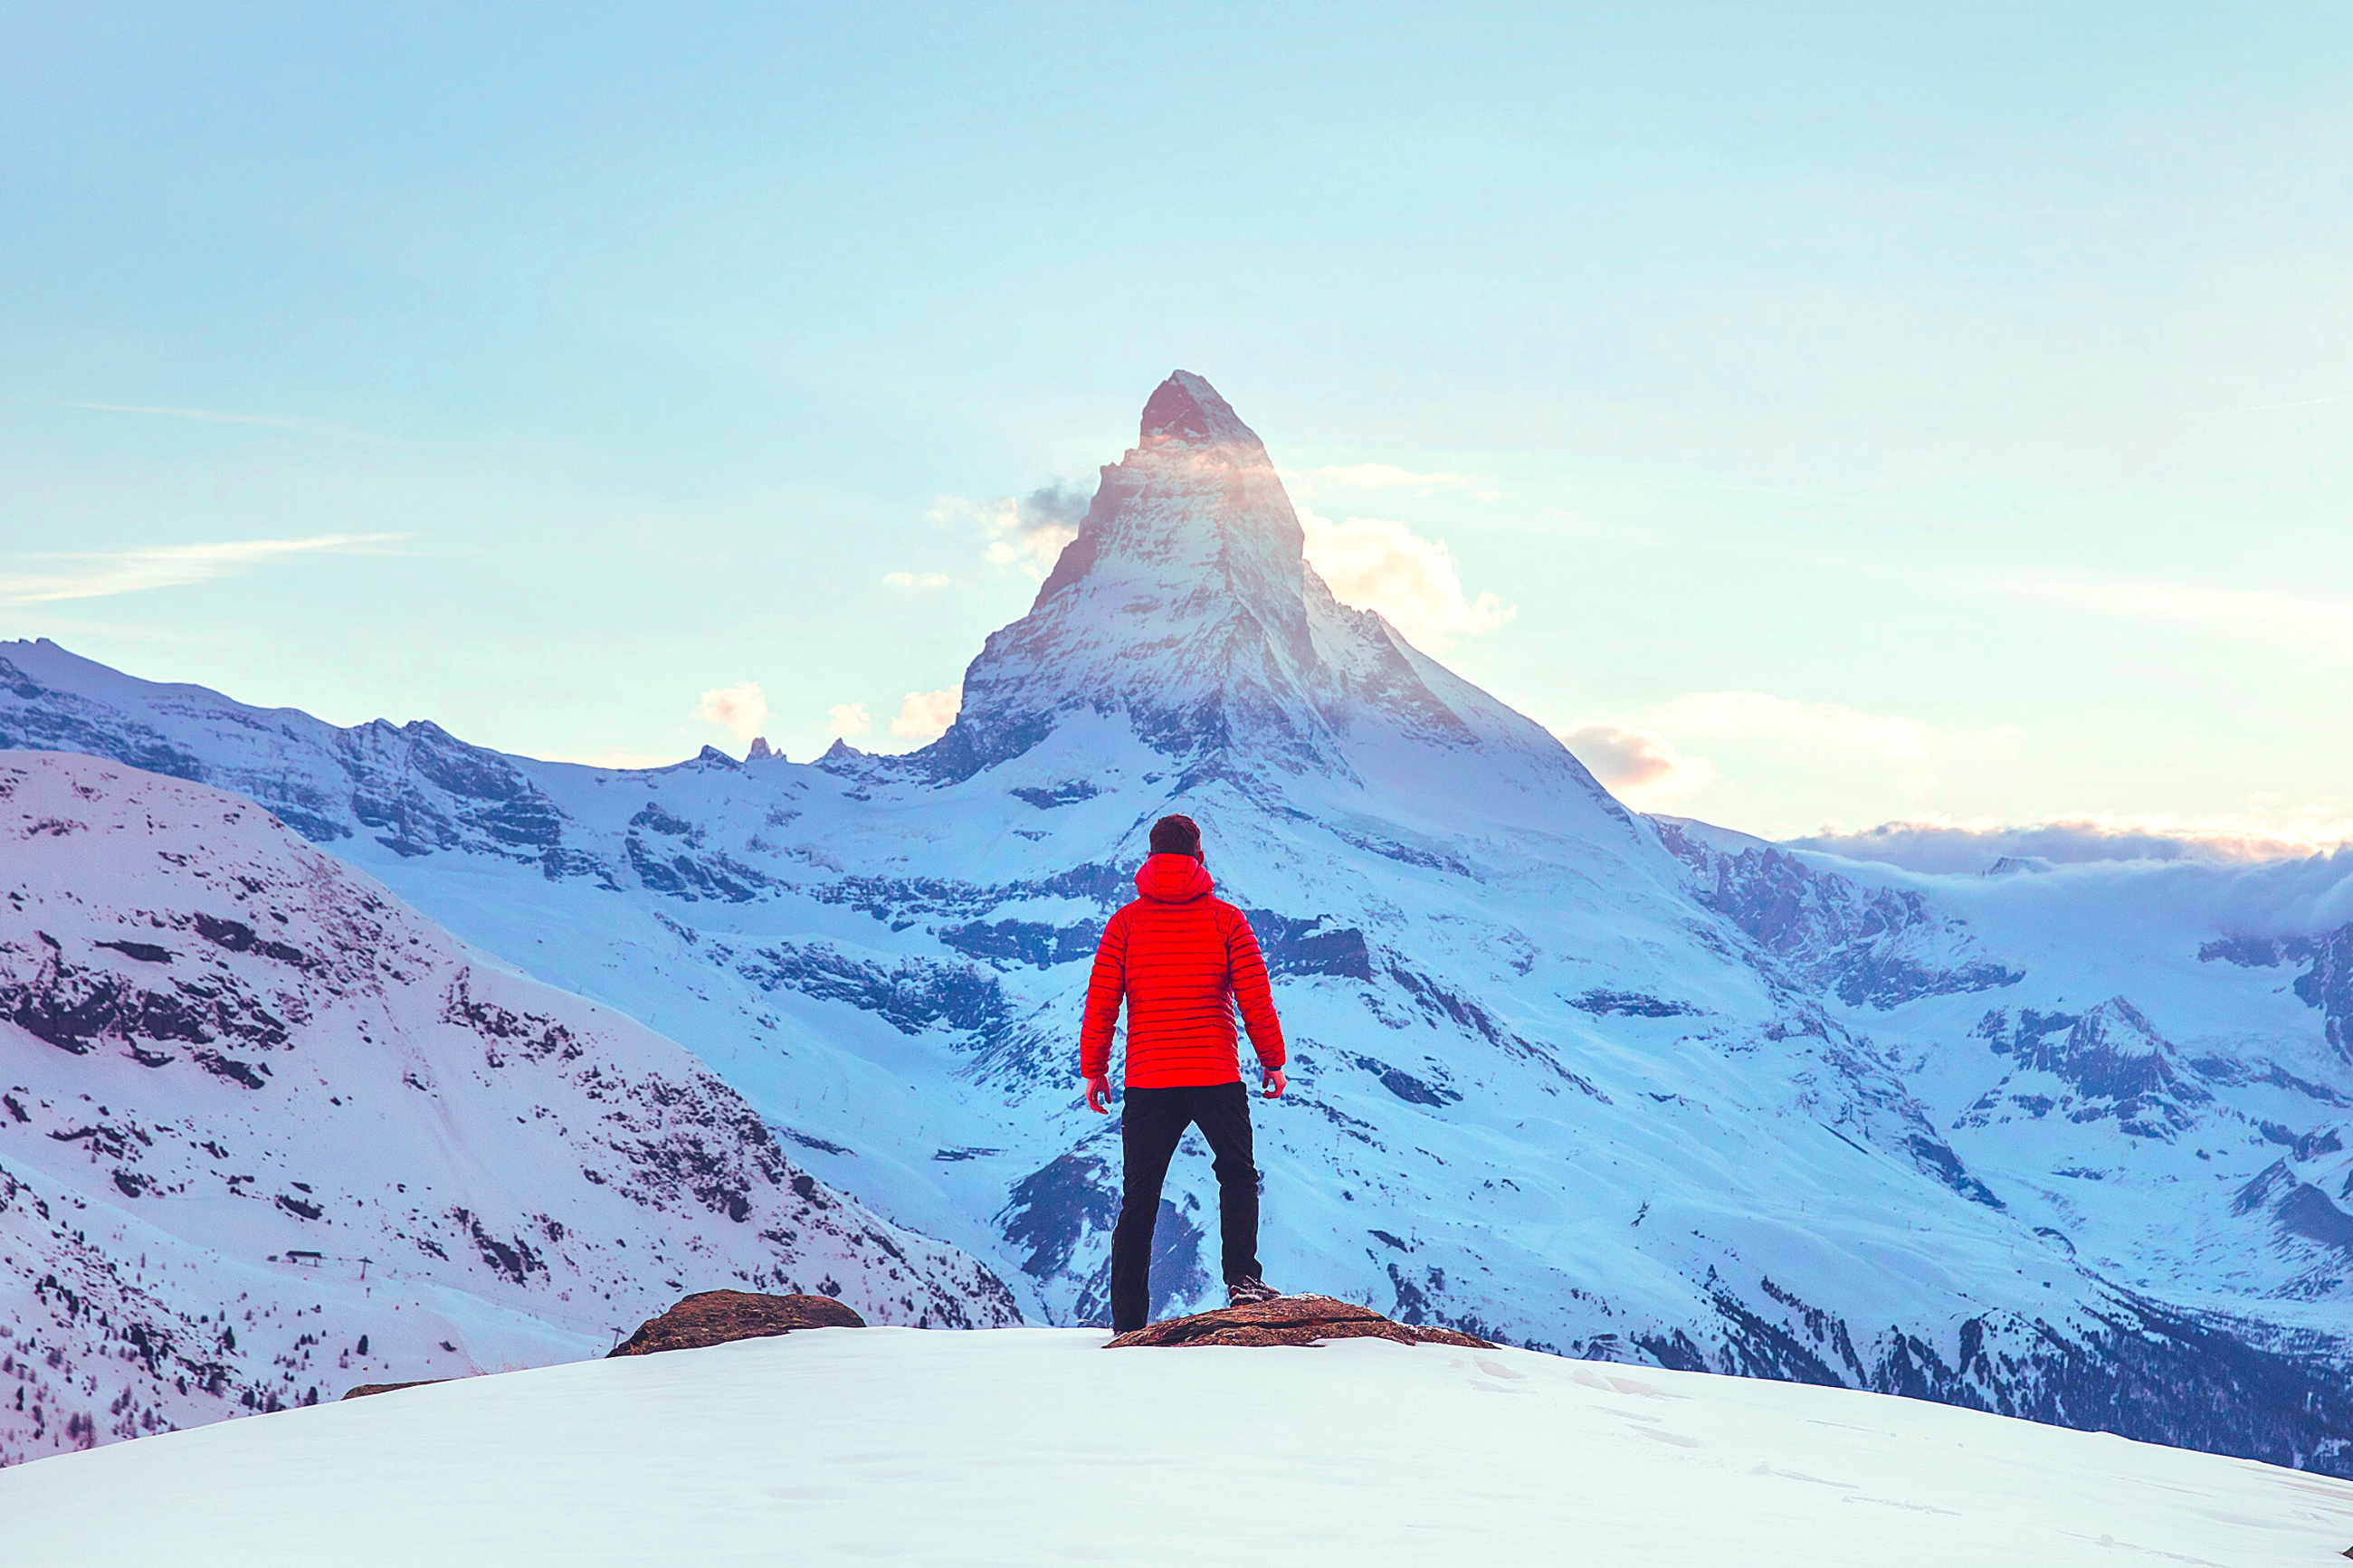 17 Life Lessons That Took Me 40 Years to Learn